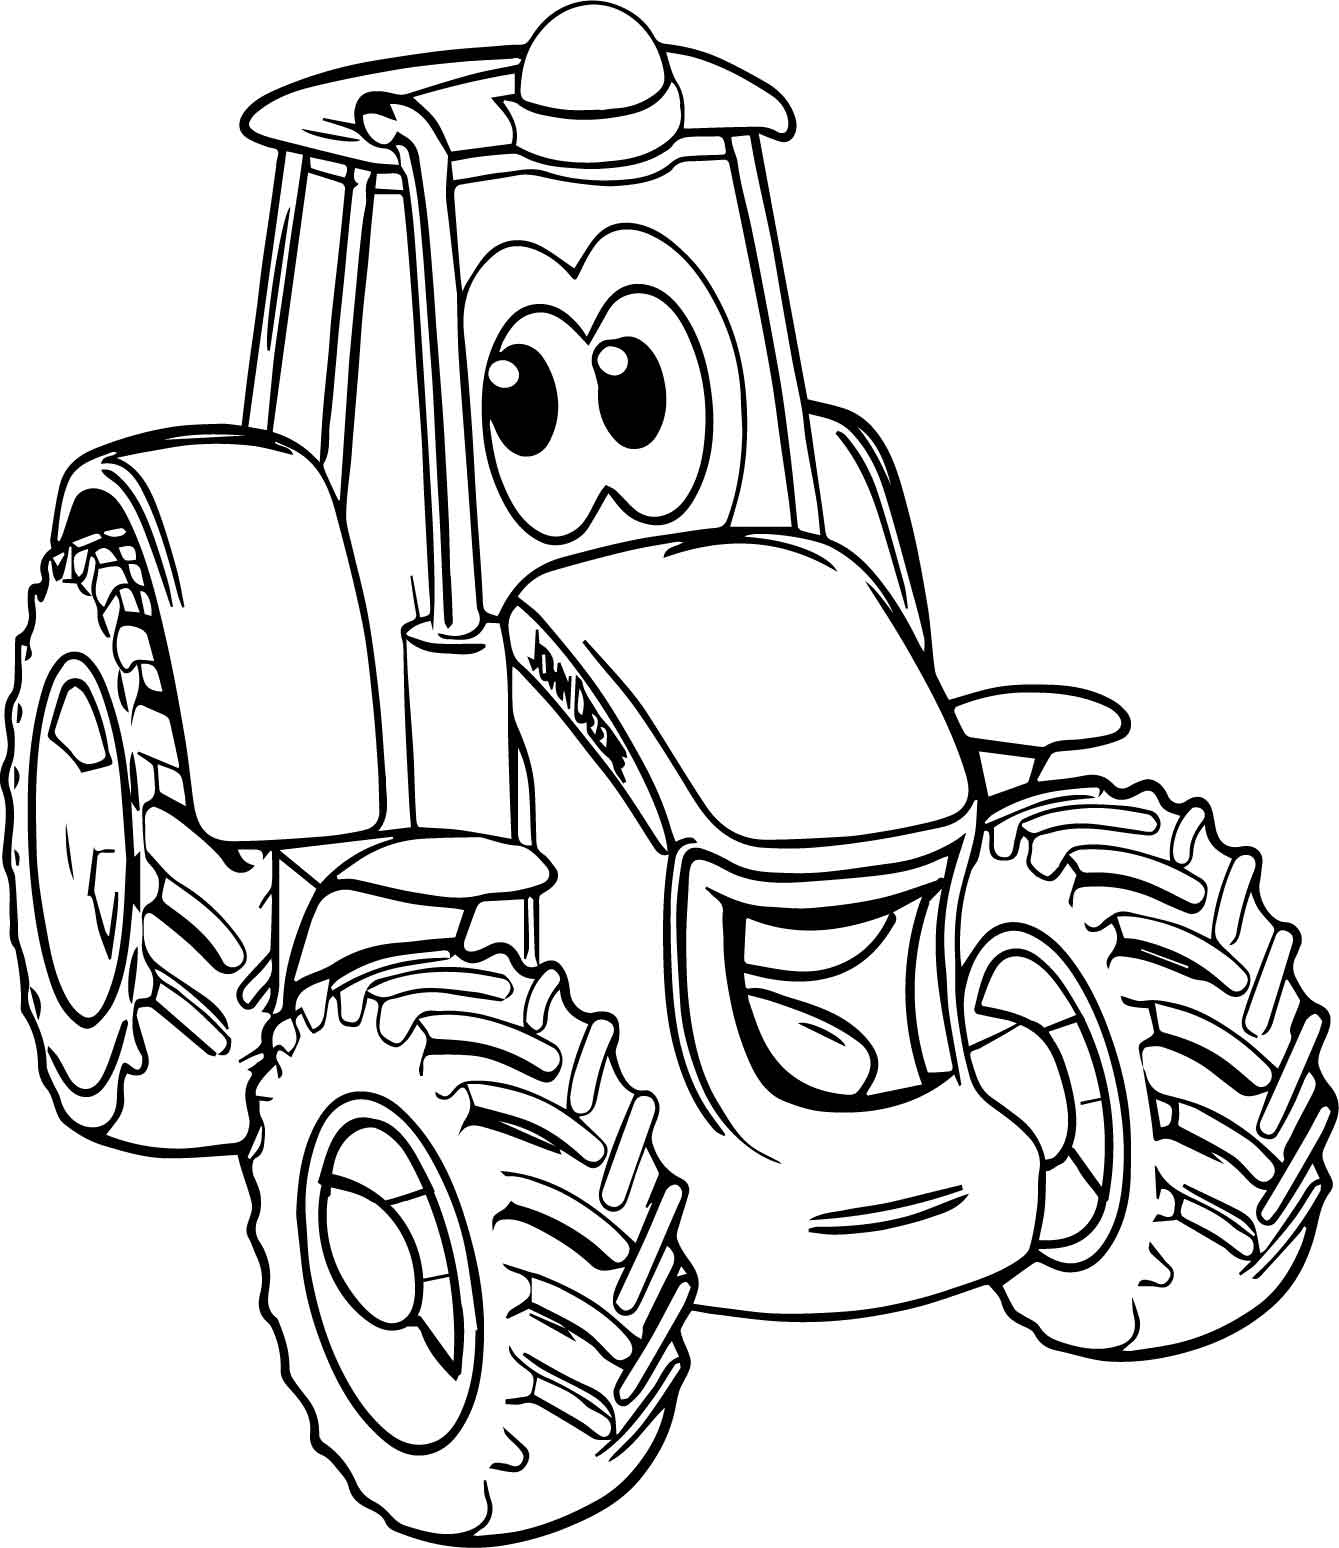 Smile John Deere Tractor Coloring Page Wecoloringpage Tractor Coloring Pages